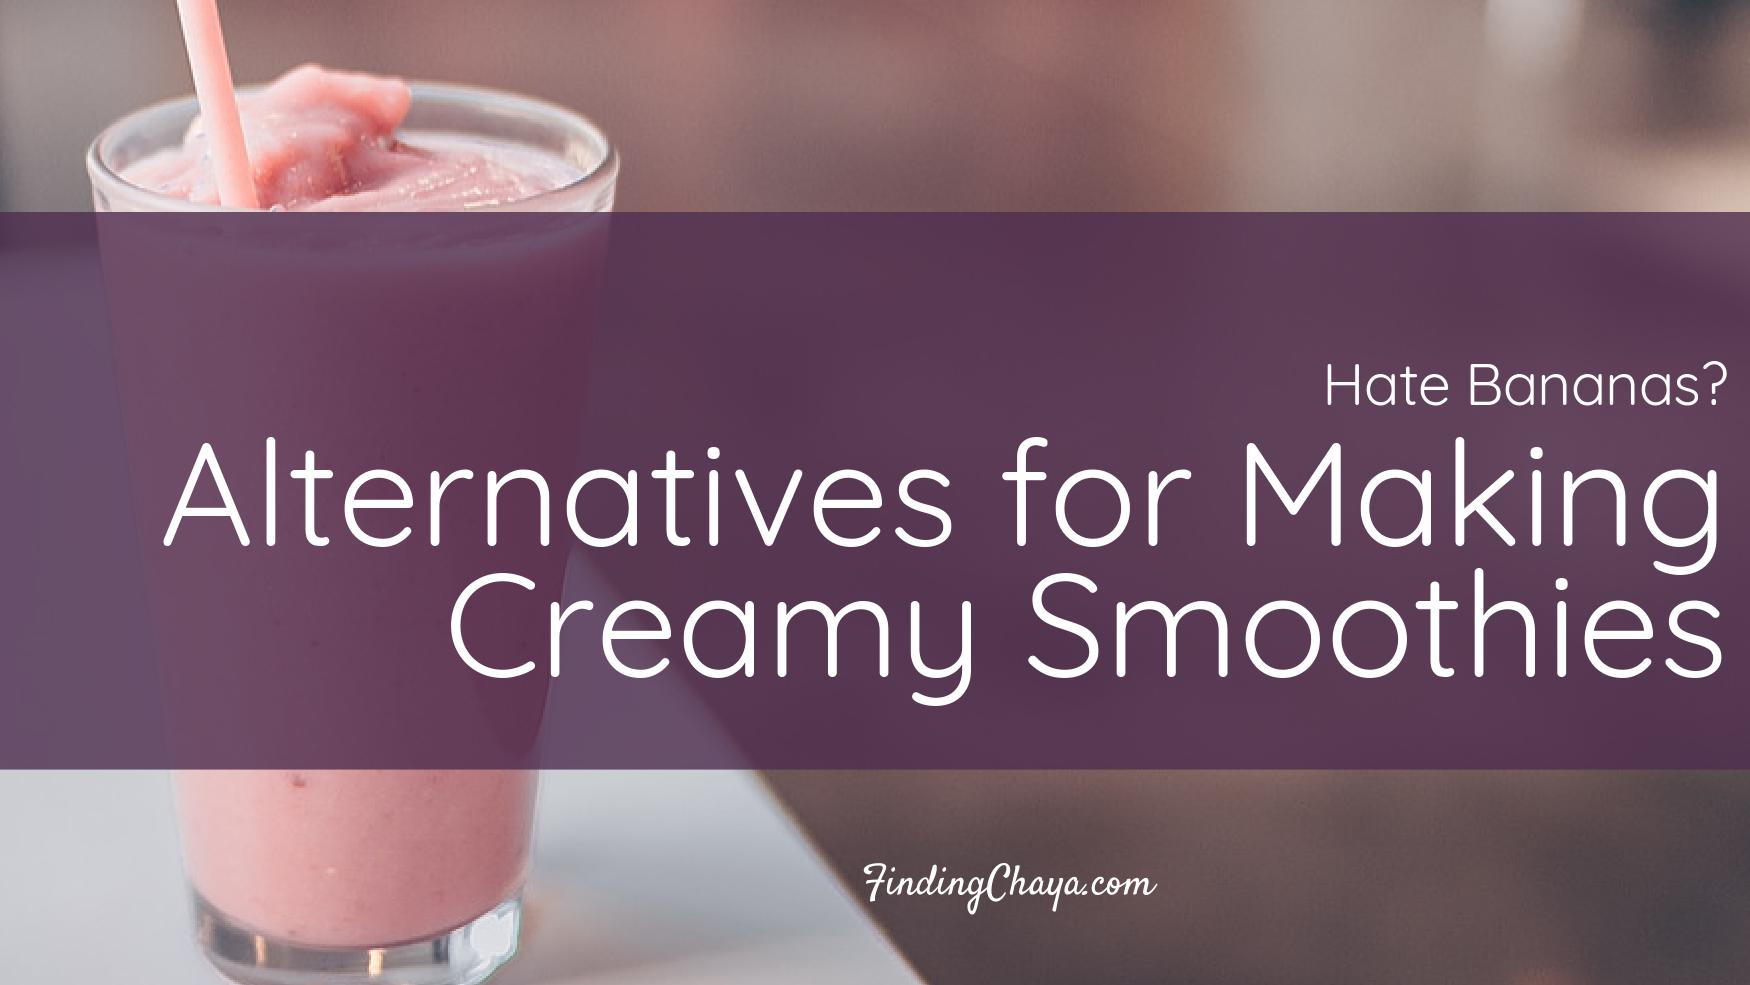 Hate Bananas? || Creamy Smoothies the Way You Want Them